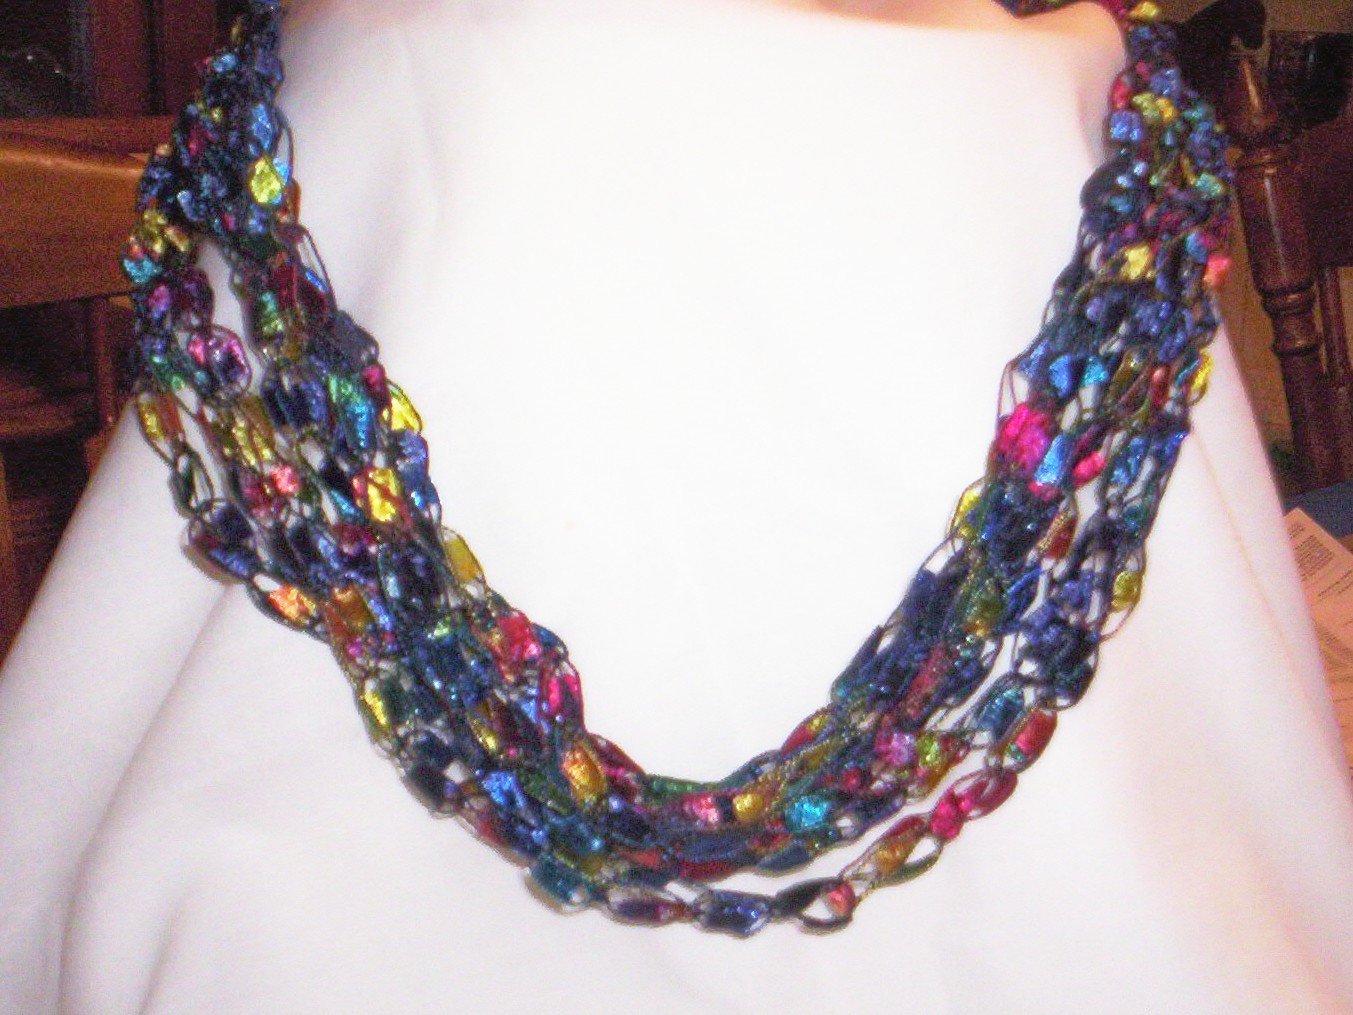 Crochet Beaded Necklace Unique 25 Cool Crochet Necklace Patterns Of Contemporary 43 Images Crochet Beaded Necklace